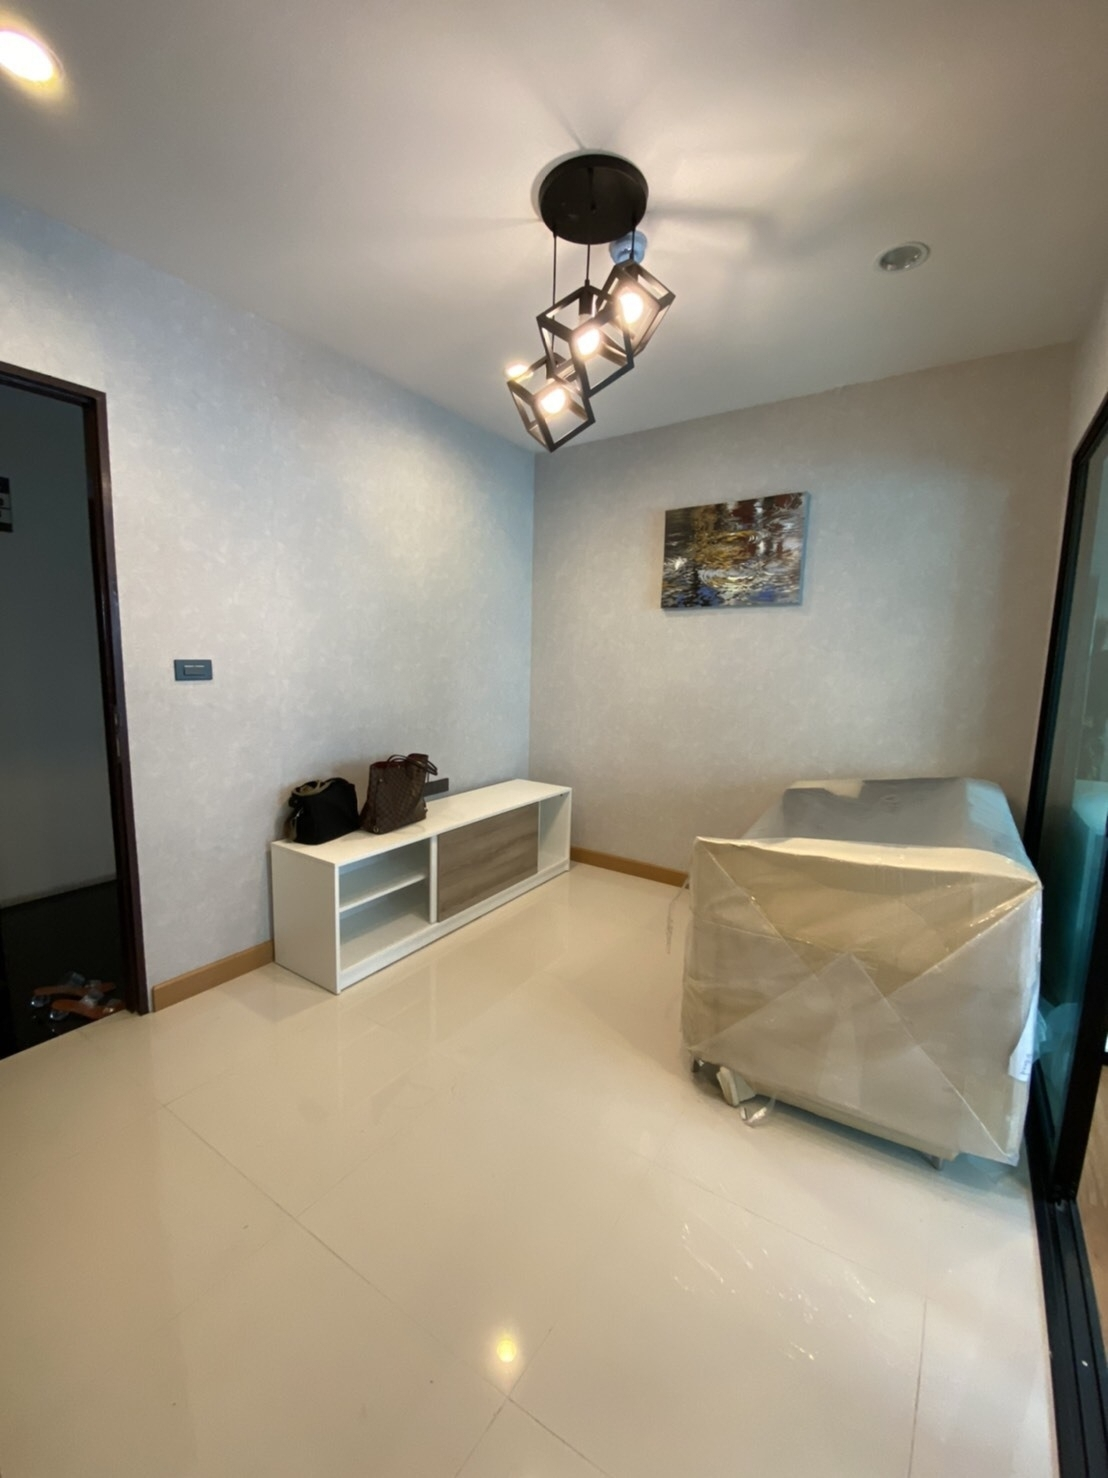 For SaleCondoChengwatana, Muangthong : Condo for sale near Government Center, B-Leaf Tiwanon Condo, 1 bedroom, size 28 square meters, near Chaengwattana Government Center, BTS Sai Kham Phu, Ngamwongwan, Khae Rai, Chaengwattana, Muang Thong, Pak Kret, Nonthaburi